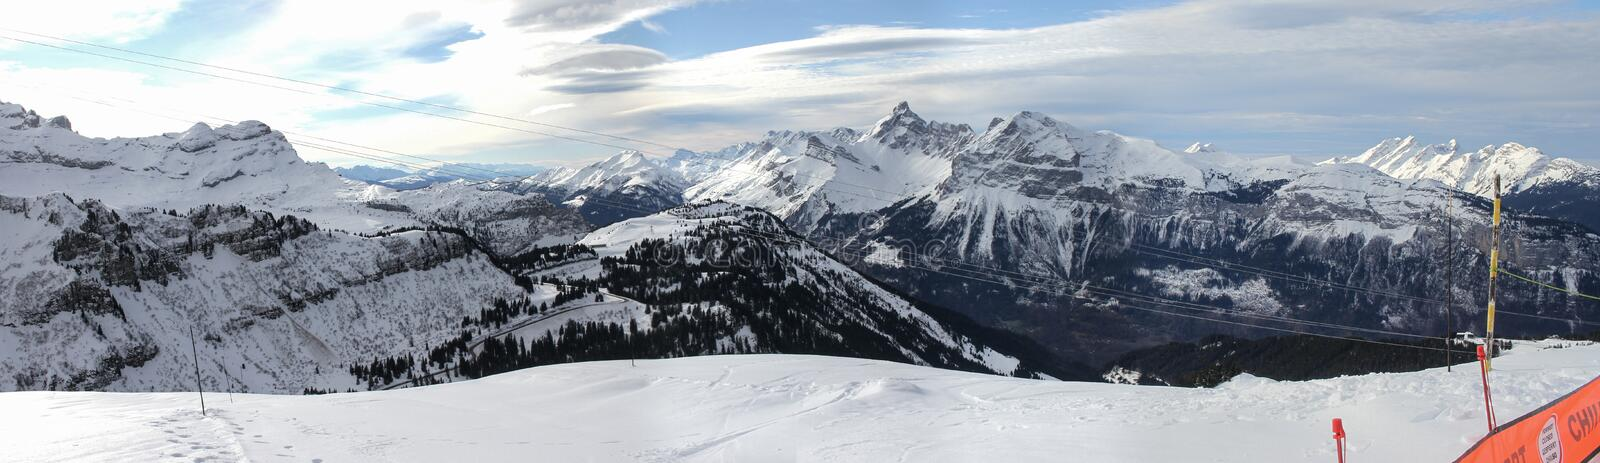 View to Grandes Jorasses Mountain Range from Samoens Tetes Des Saix 2118m. Panorama view on the Grand Massif above Samoens village in the French Alps stock image